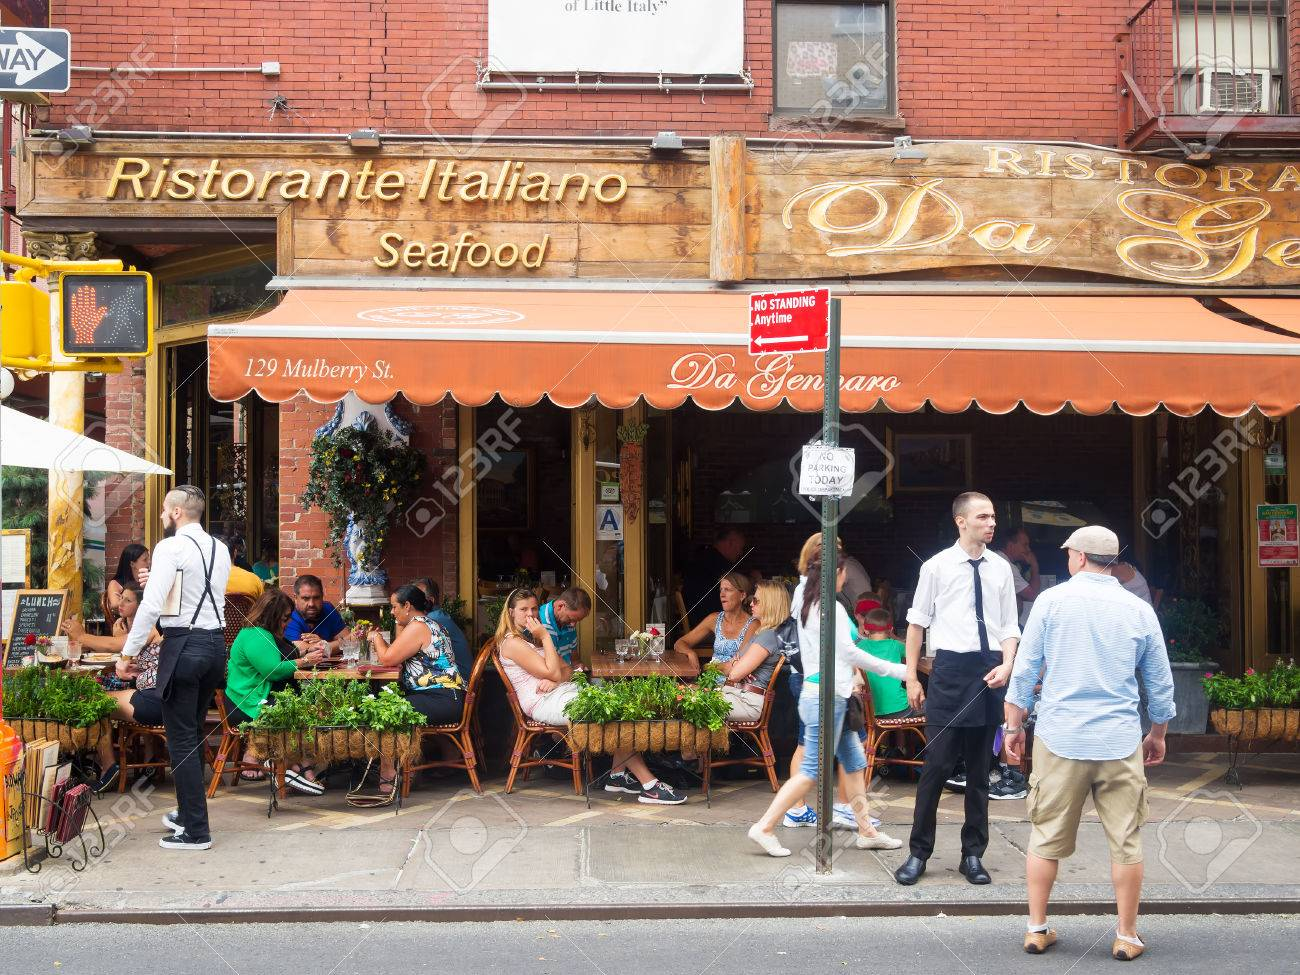 Traditional Italian Restaurant At Historic Little Italy In New